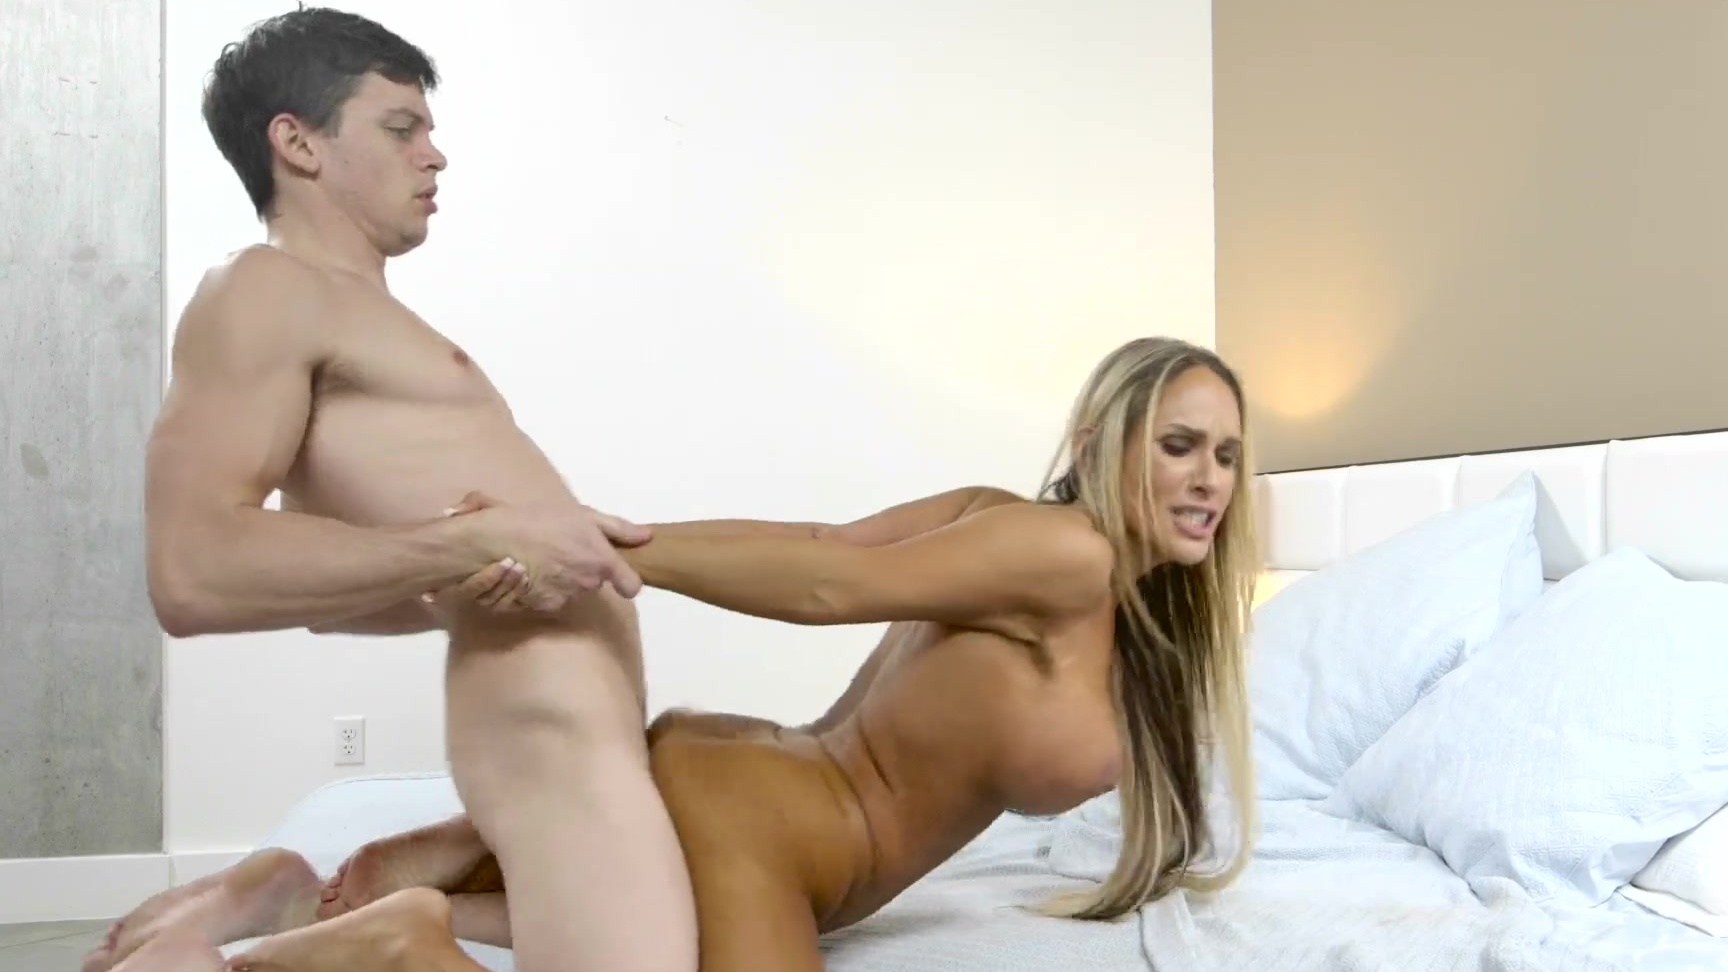 Milf blowjob and butt plug hard fuck alena lamlam 8